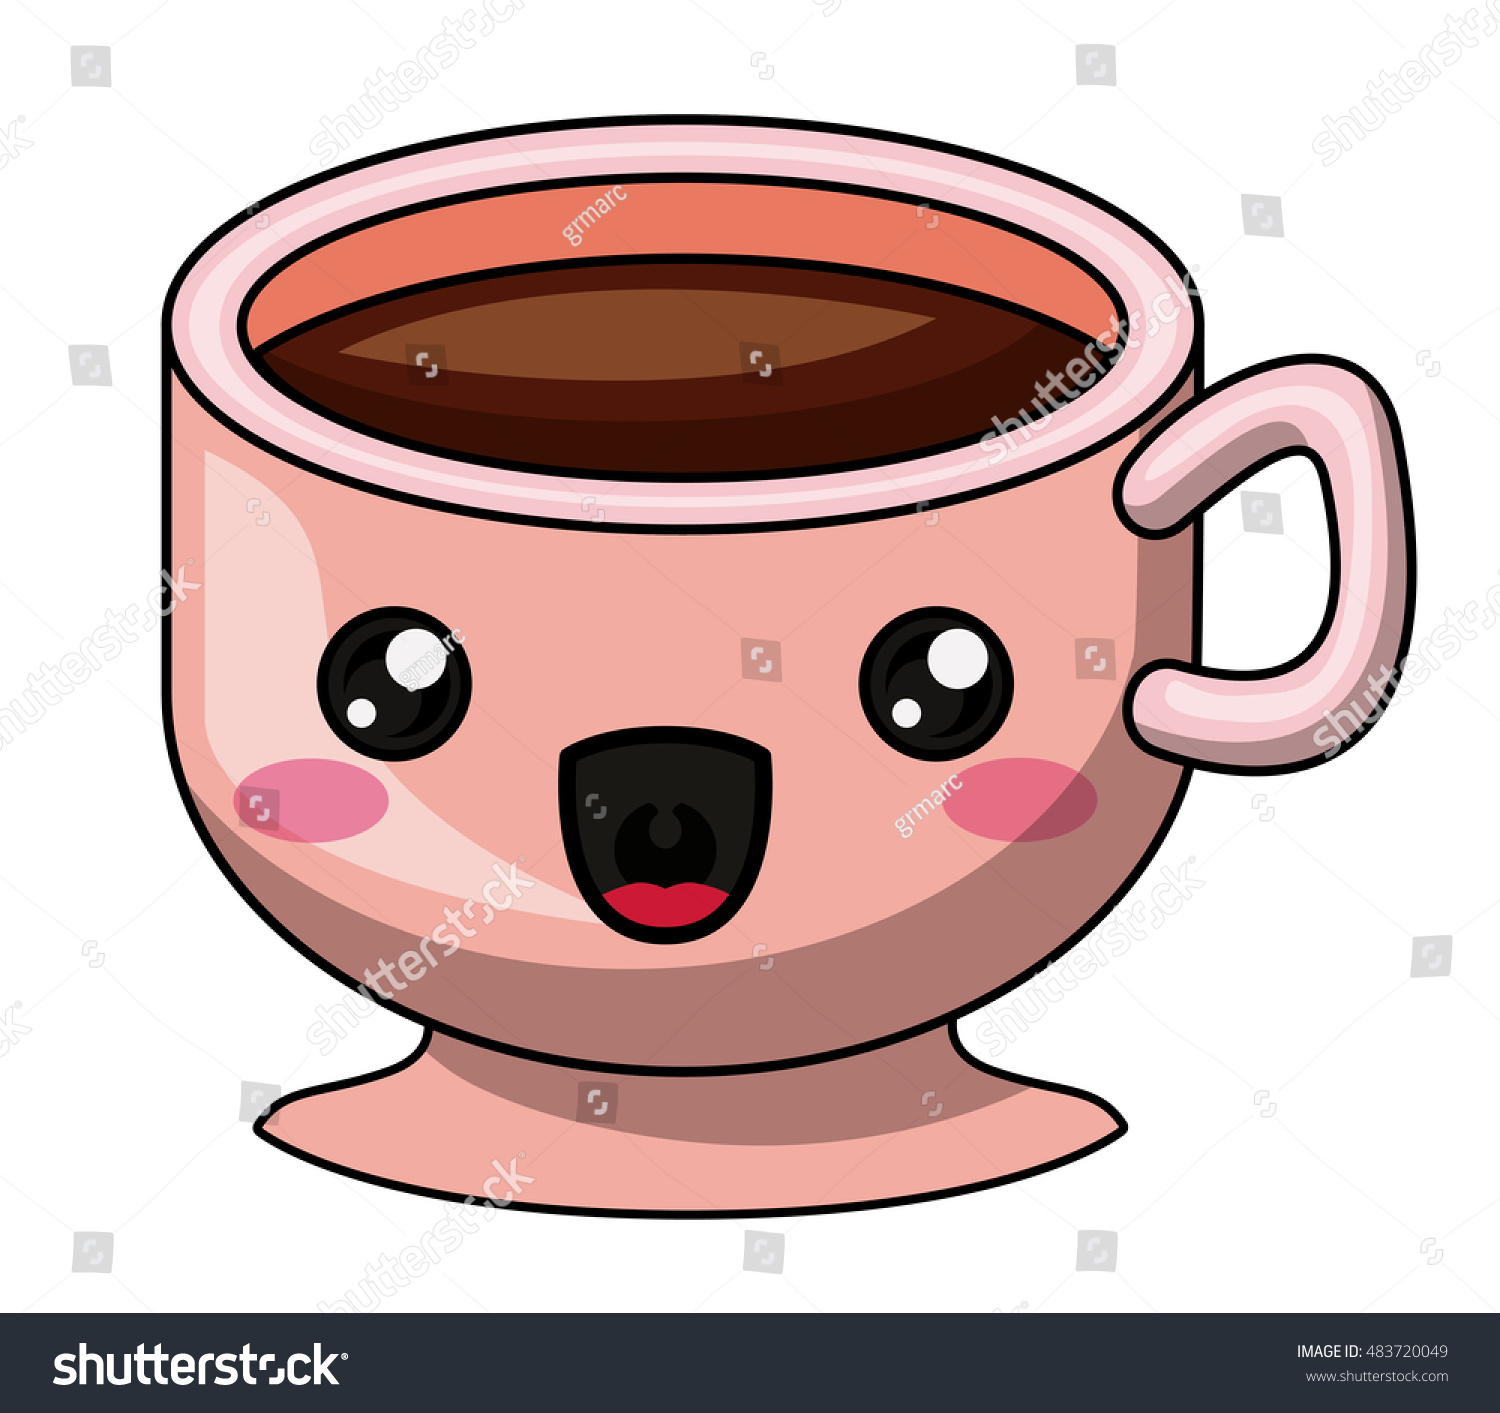 Coffee clipart cute, Coffee cute Transparent FREE for ...